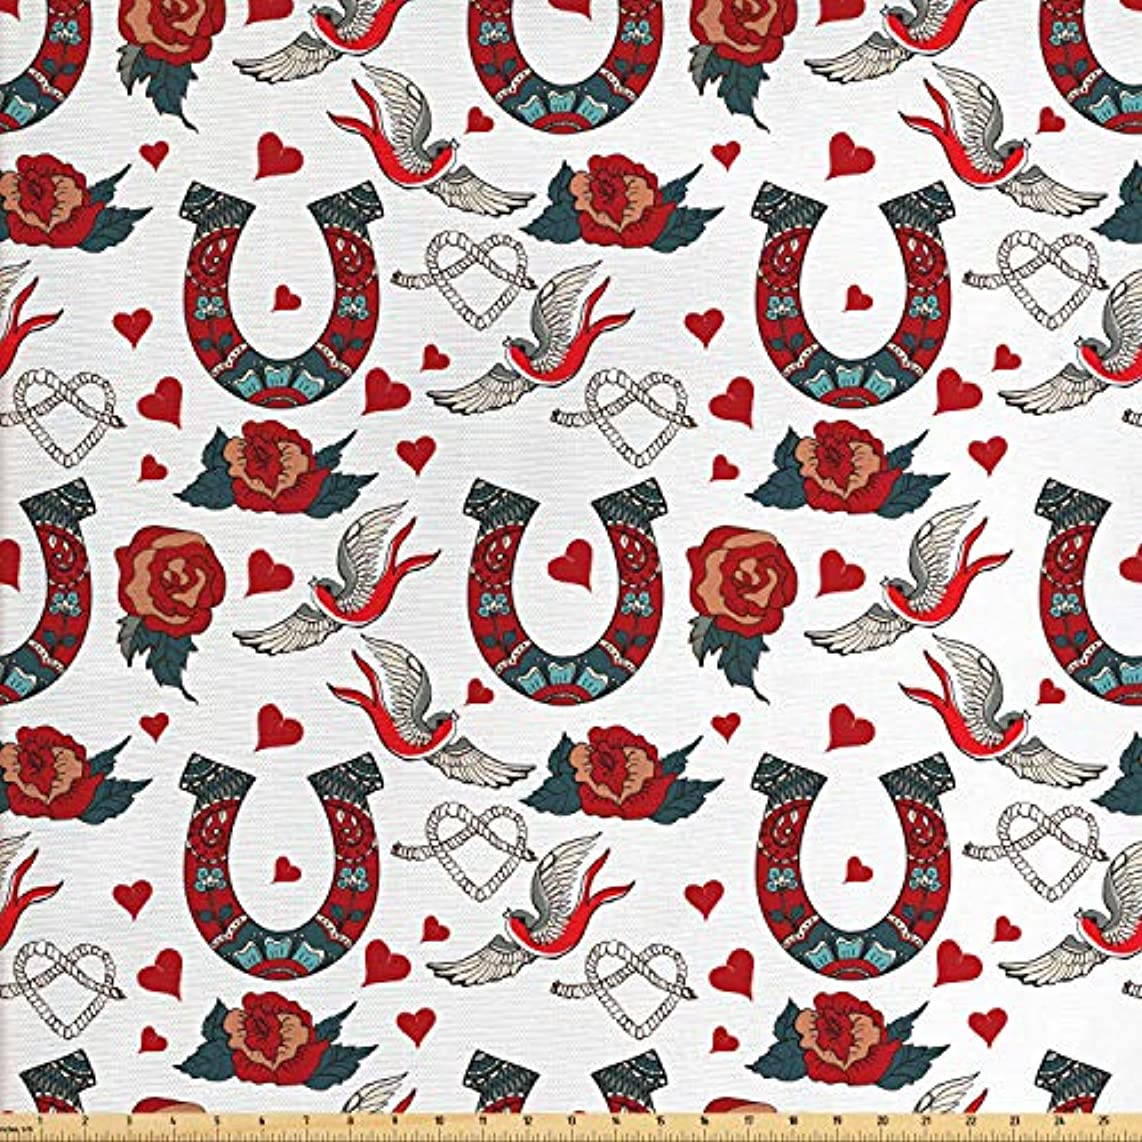 Lunarable Horseshoe Fabric by The Yard, Horseshoe with Rose Swallow Hearts Ropes Foral Ornamental Tattoo Style Art, Decorative Fabric for Upholstery and Home Accents, 2 Yards, Ruby Blue Grey